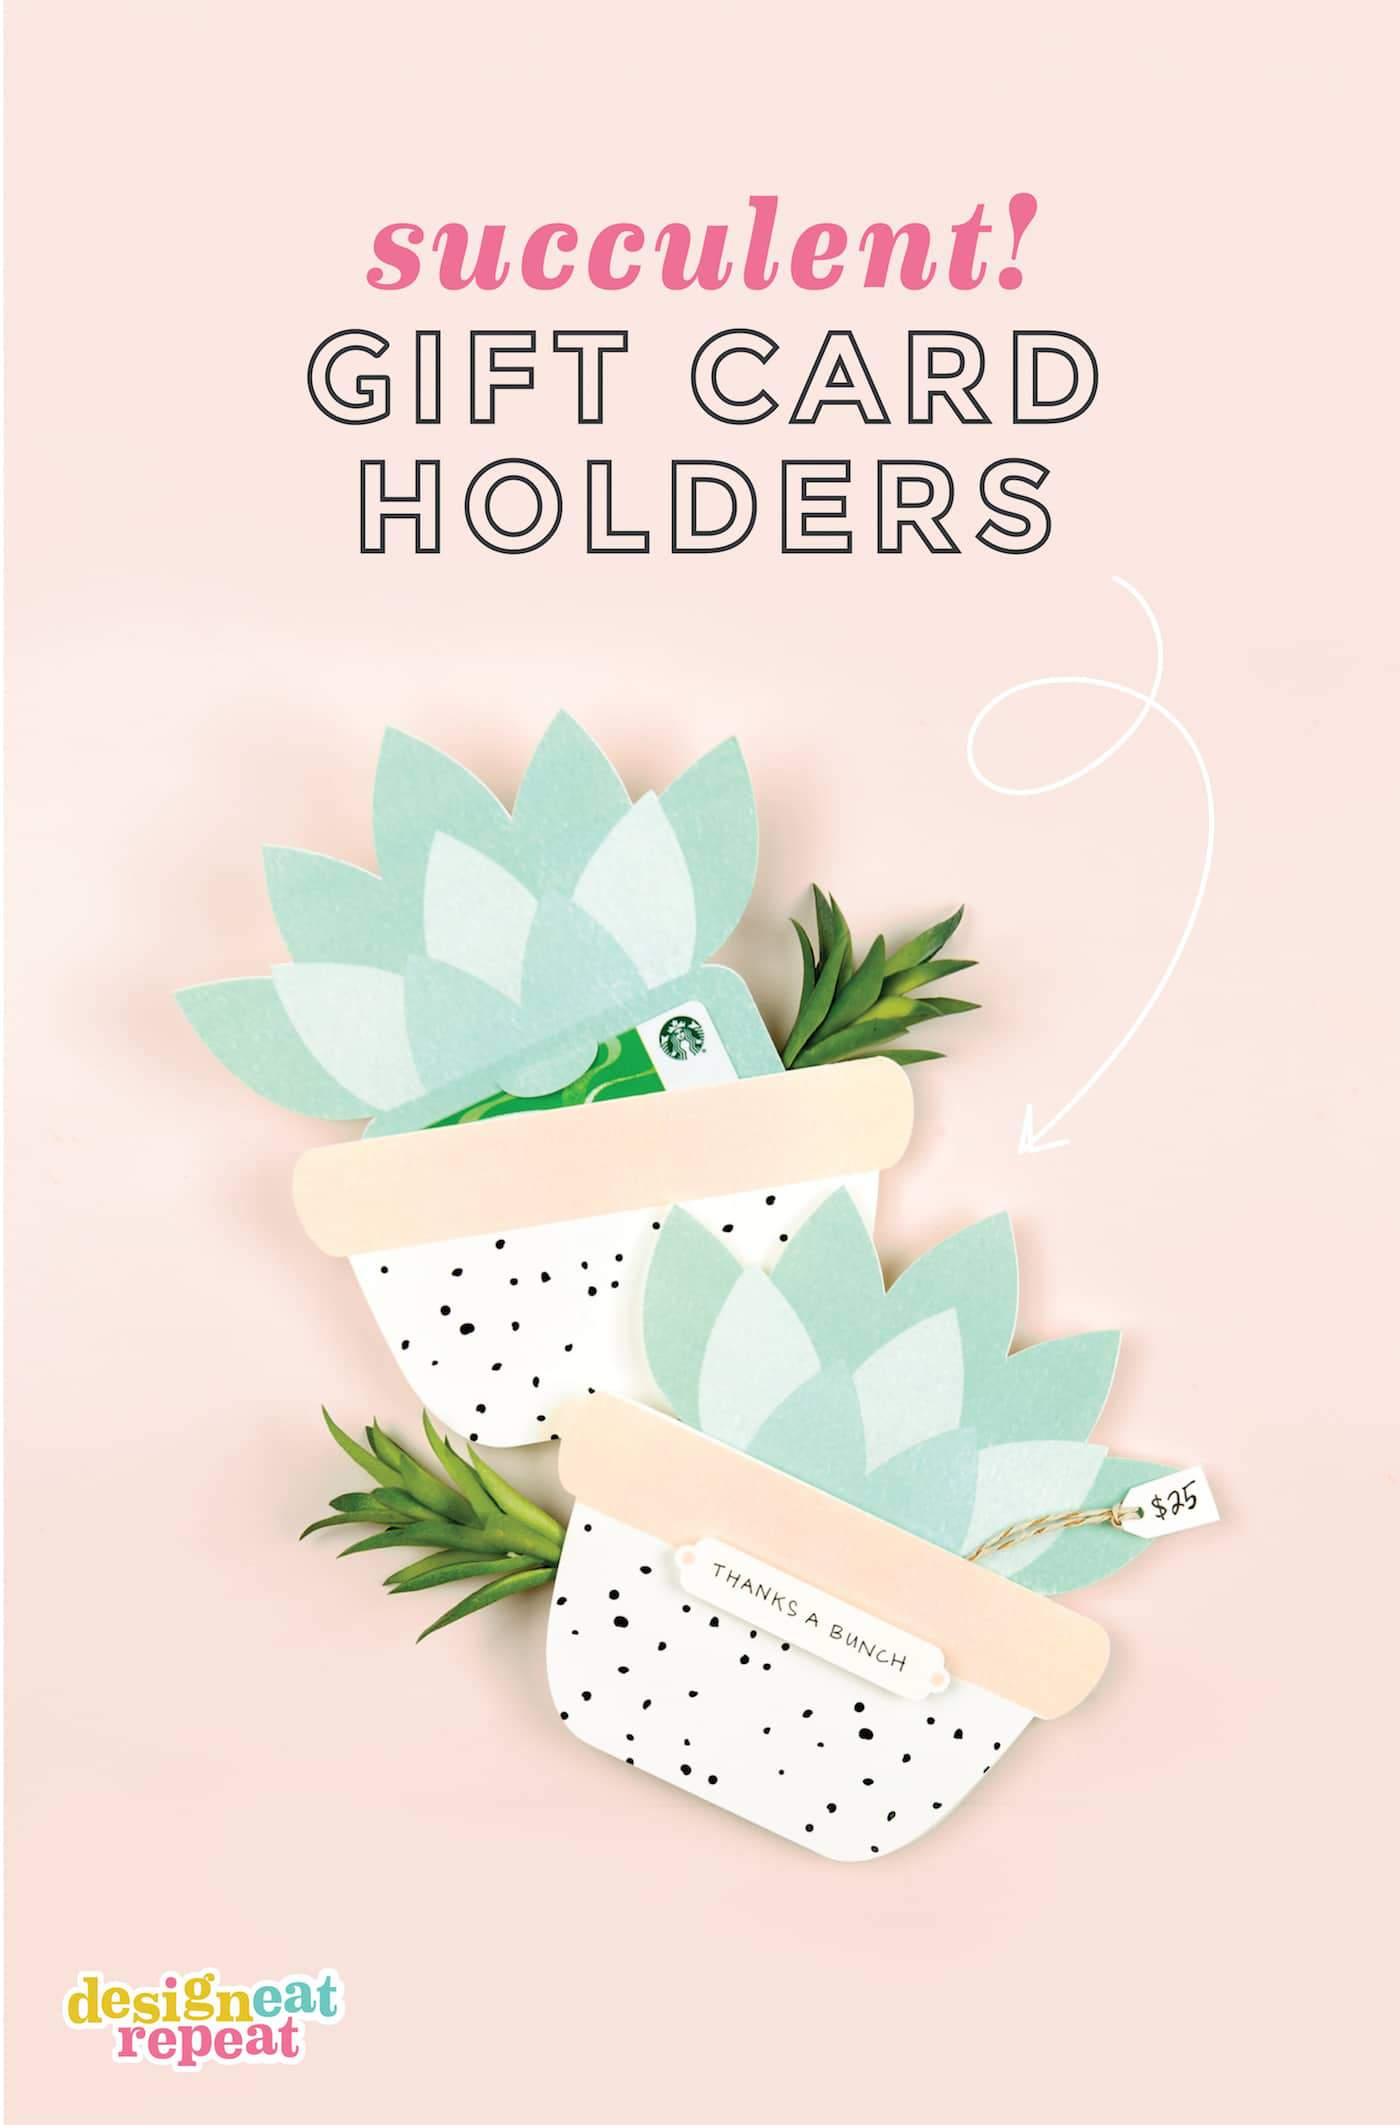 Cutest gift card holders ever! Use this free template to make your own SUCCULENT printable gift card holders! Perfect for teacher gifts, bridal showers, and birthdays! #printable | #giftcard | www.DesignEatRepeat.com